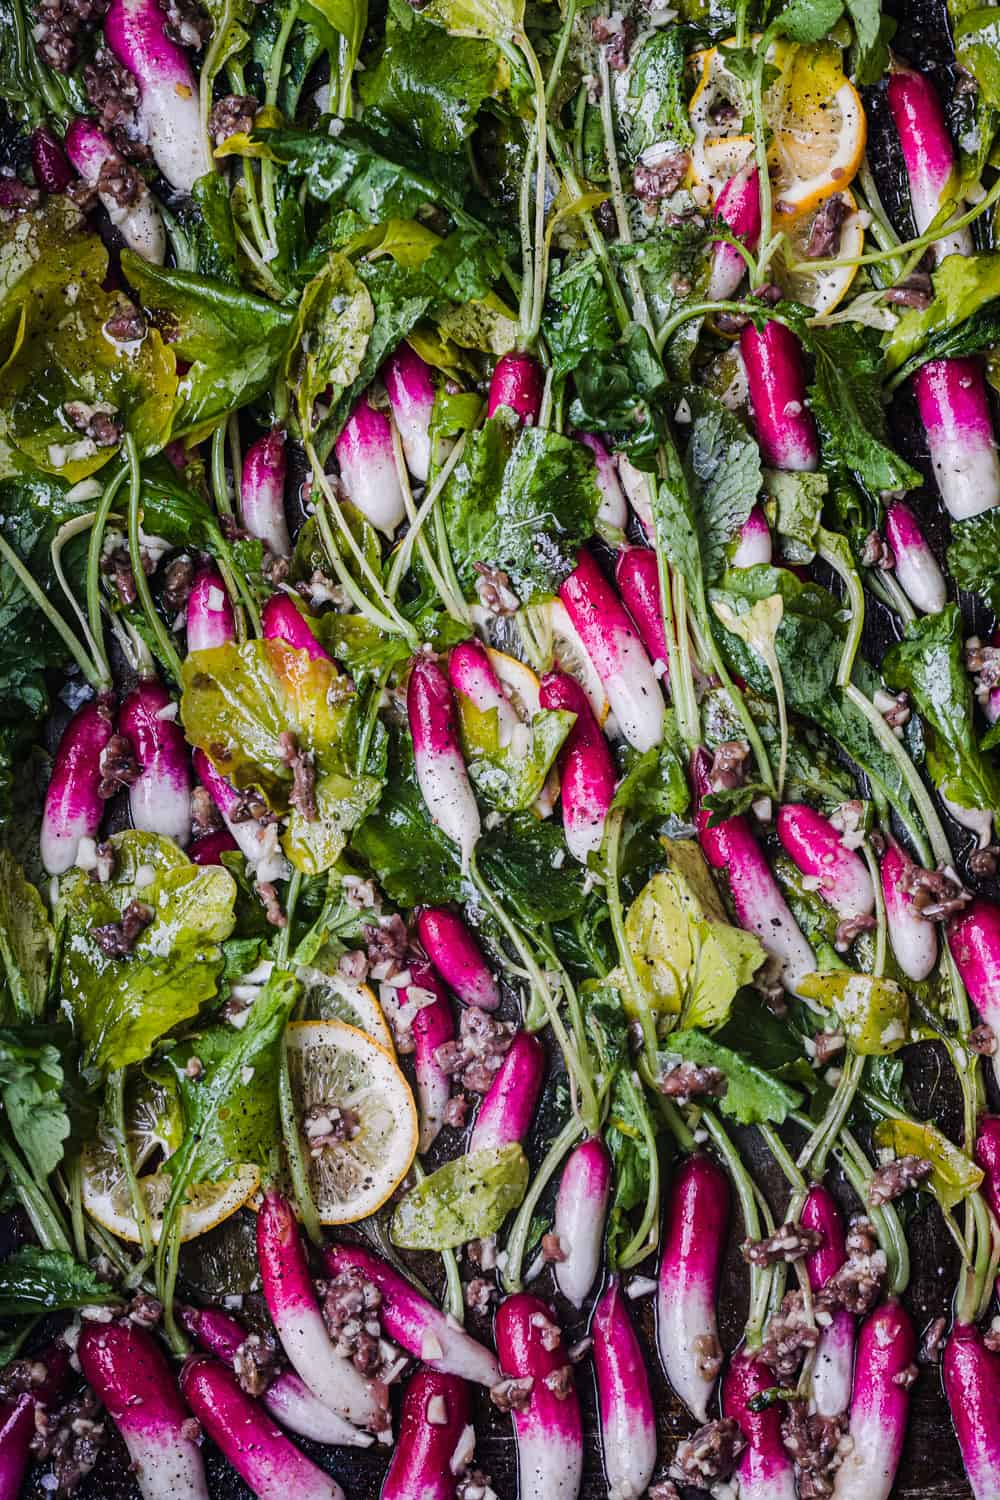 pre-oven shot of French breakfast radishes with their leafy green tops still on, tossed with garlic and anchovies